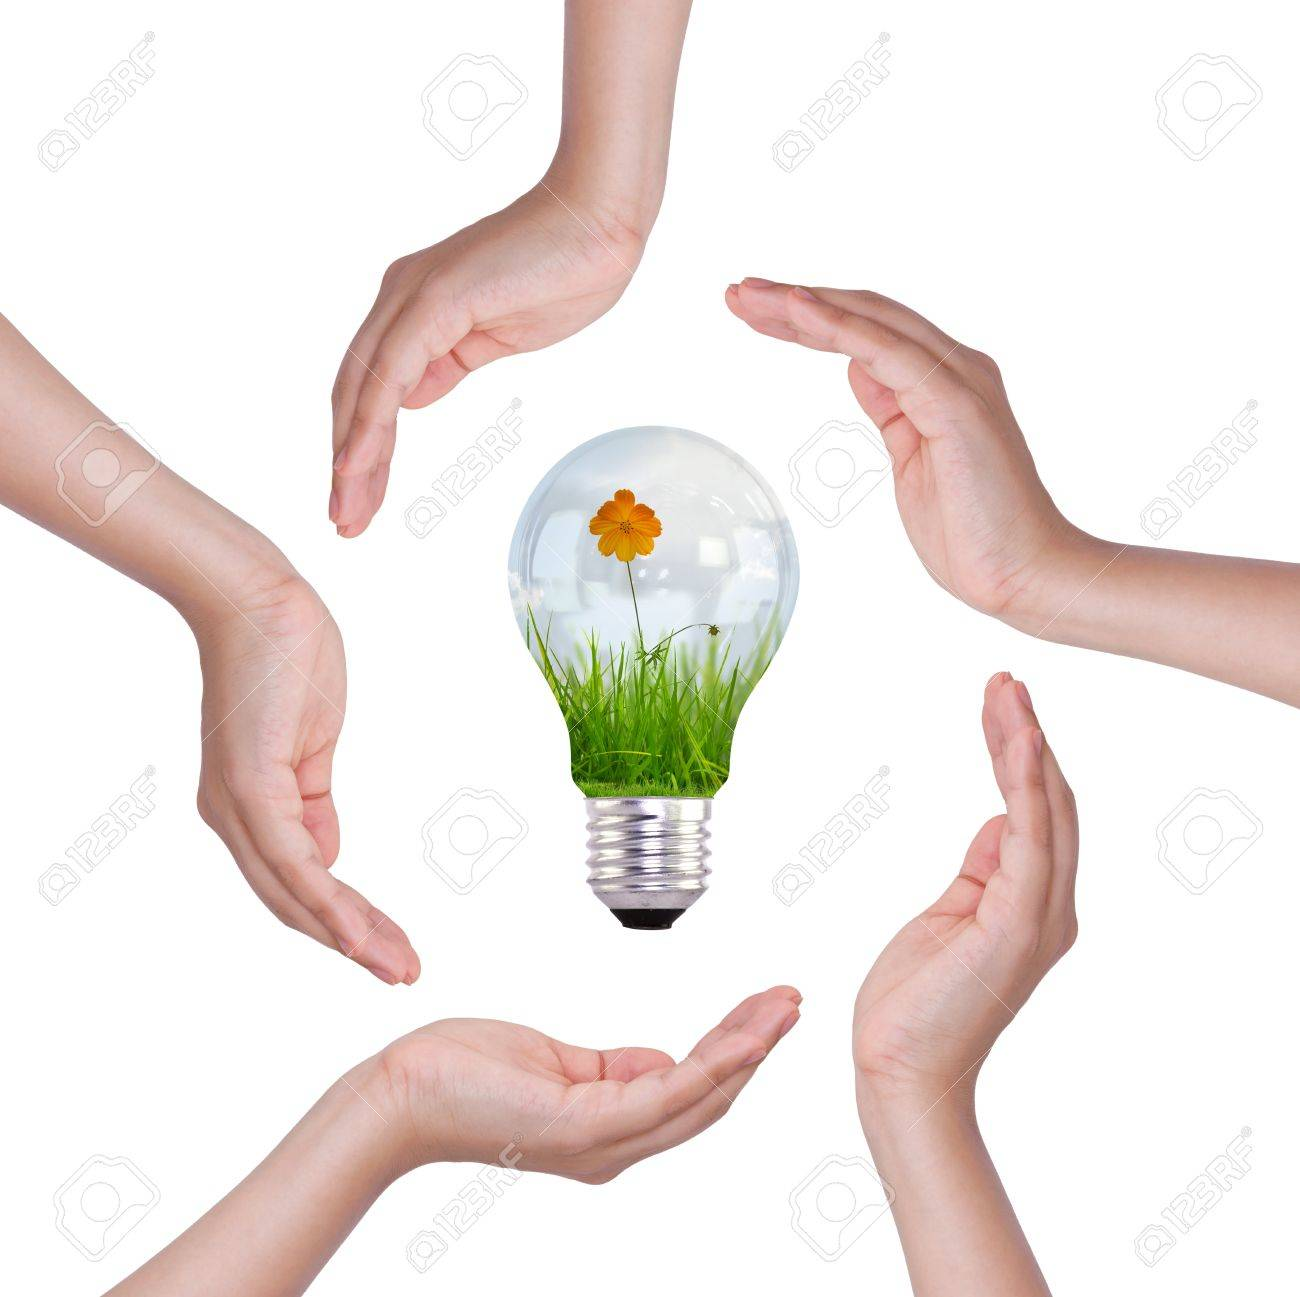 Light bulb in hand (light bulb with beautiful flower inside) Stock Photo - 11193355